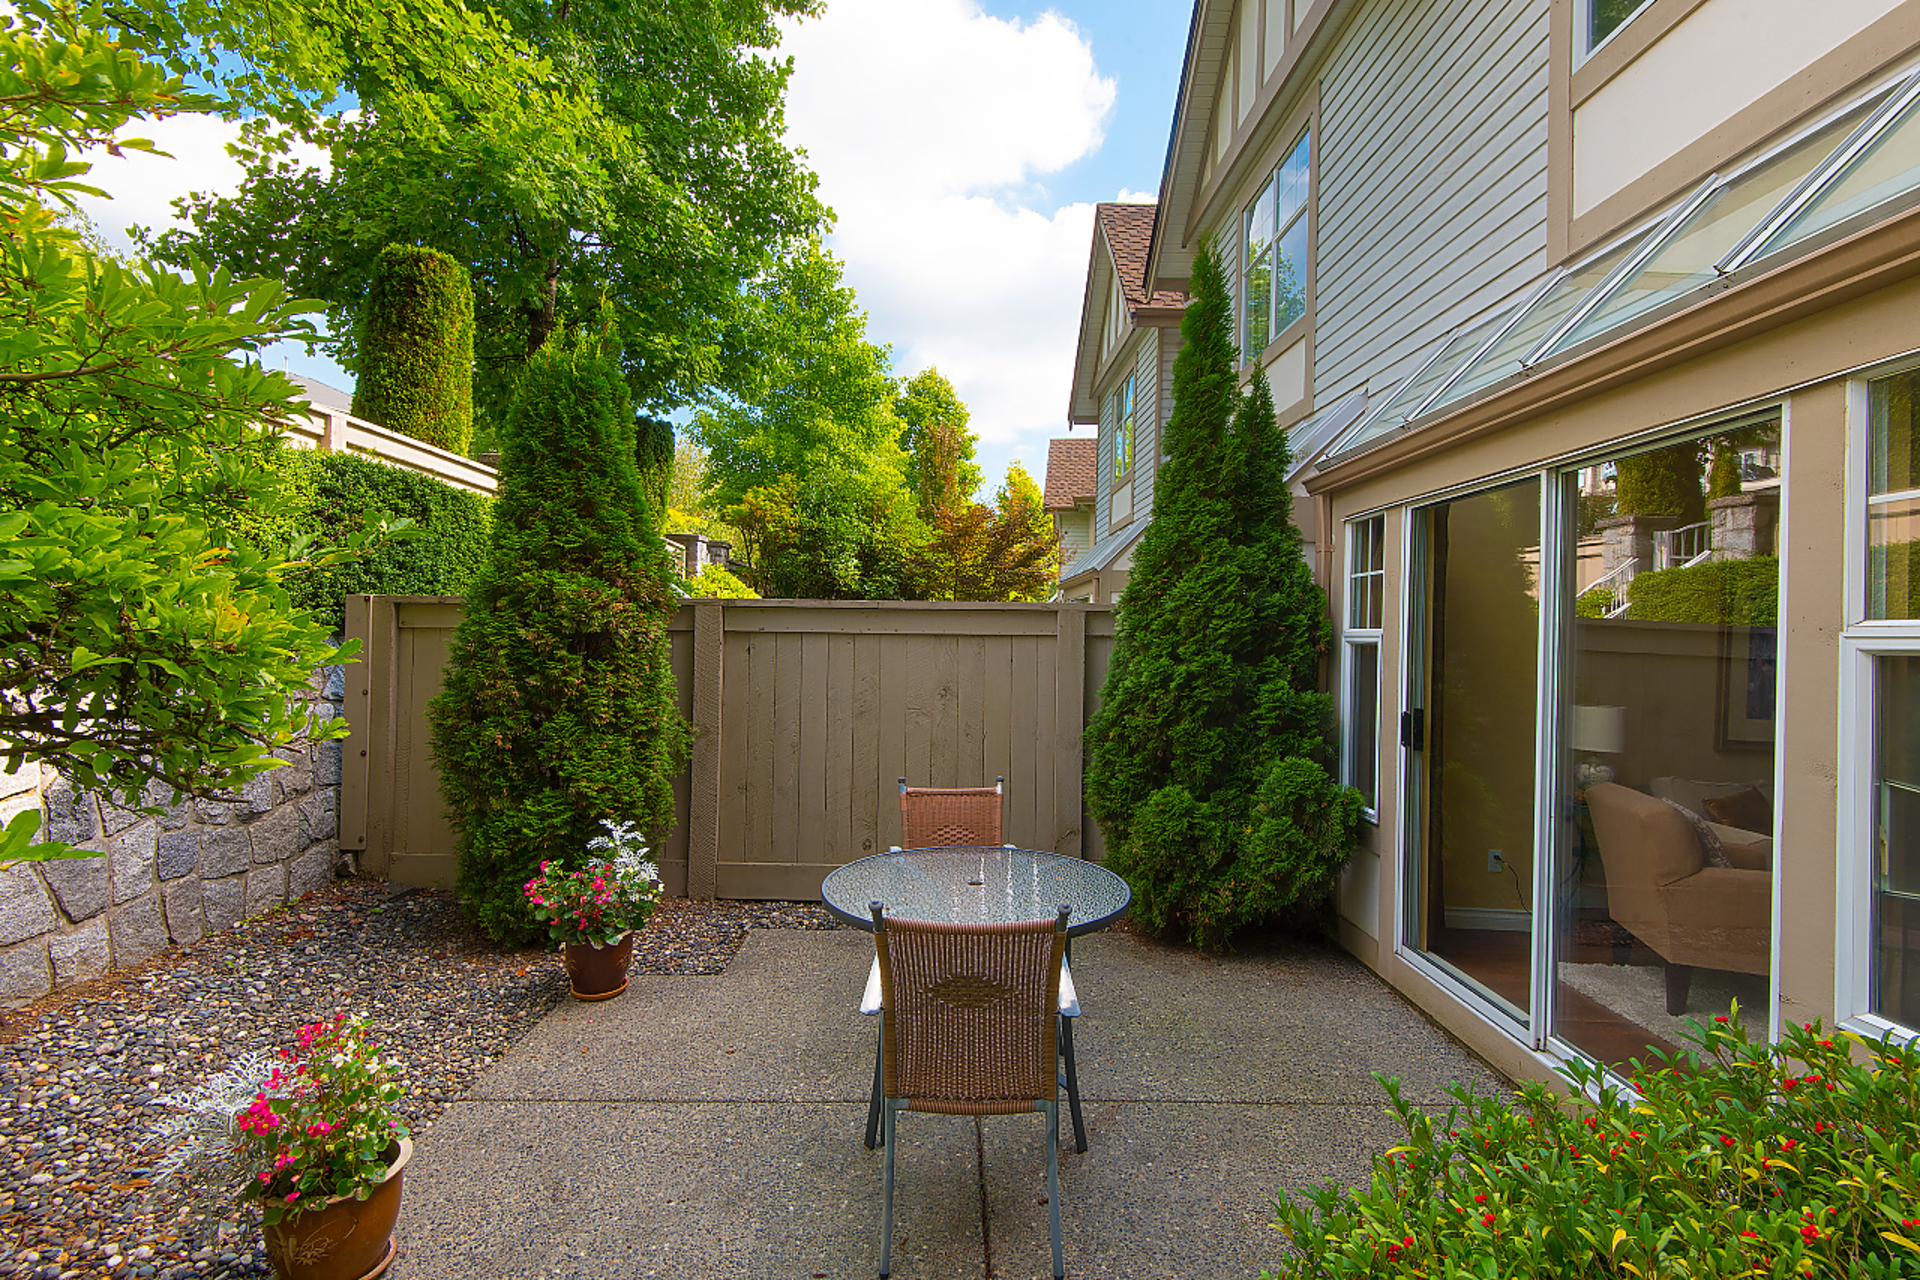 006 at 20 - 1 Aspenwood Drive, Heritage Woods PM, Port Moody